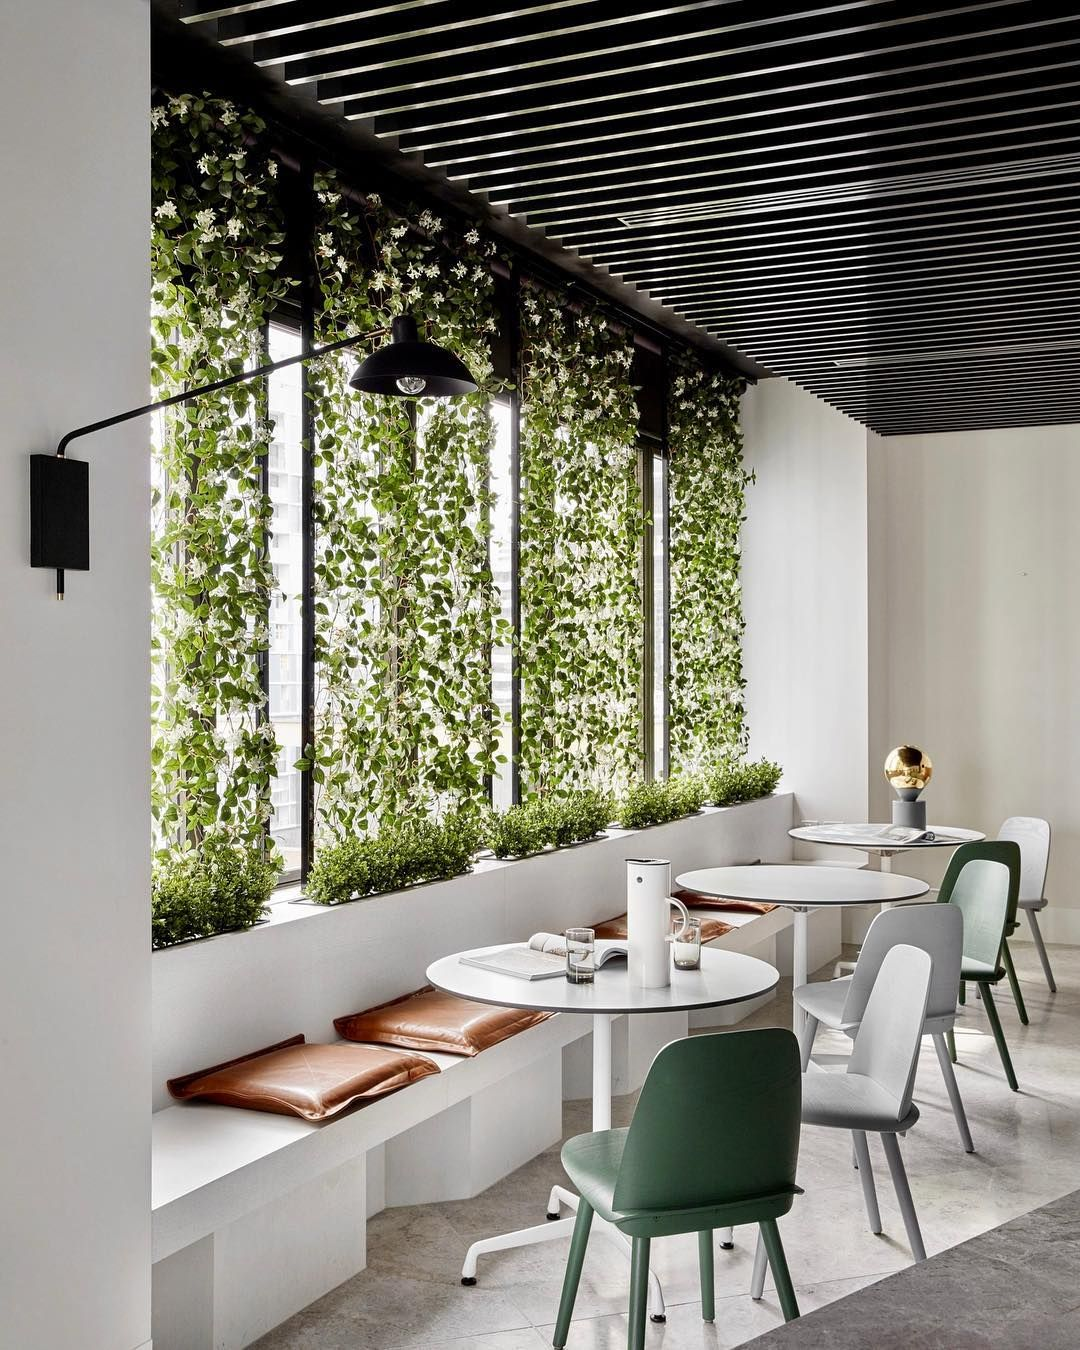 Green Cafe Design: // GREEN DAY ... NOT A Chic Cafe, But Our Fave Workplace